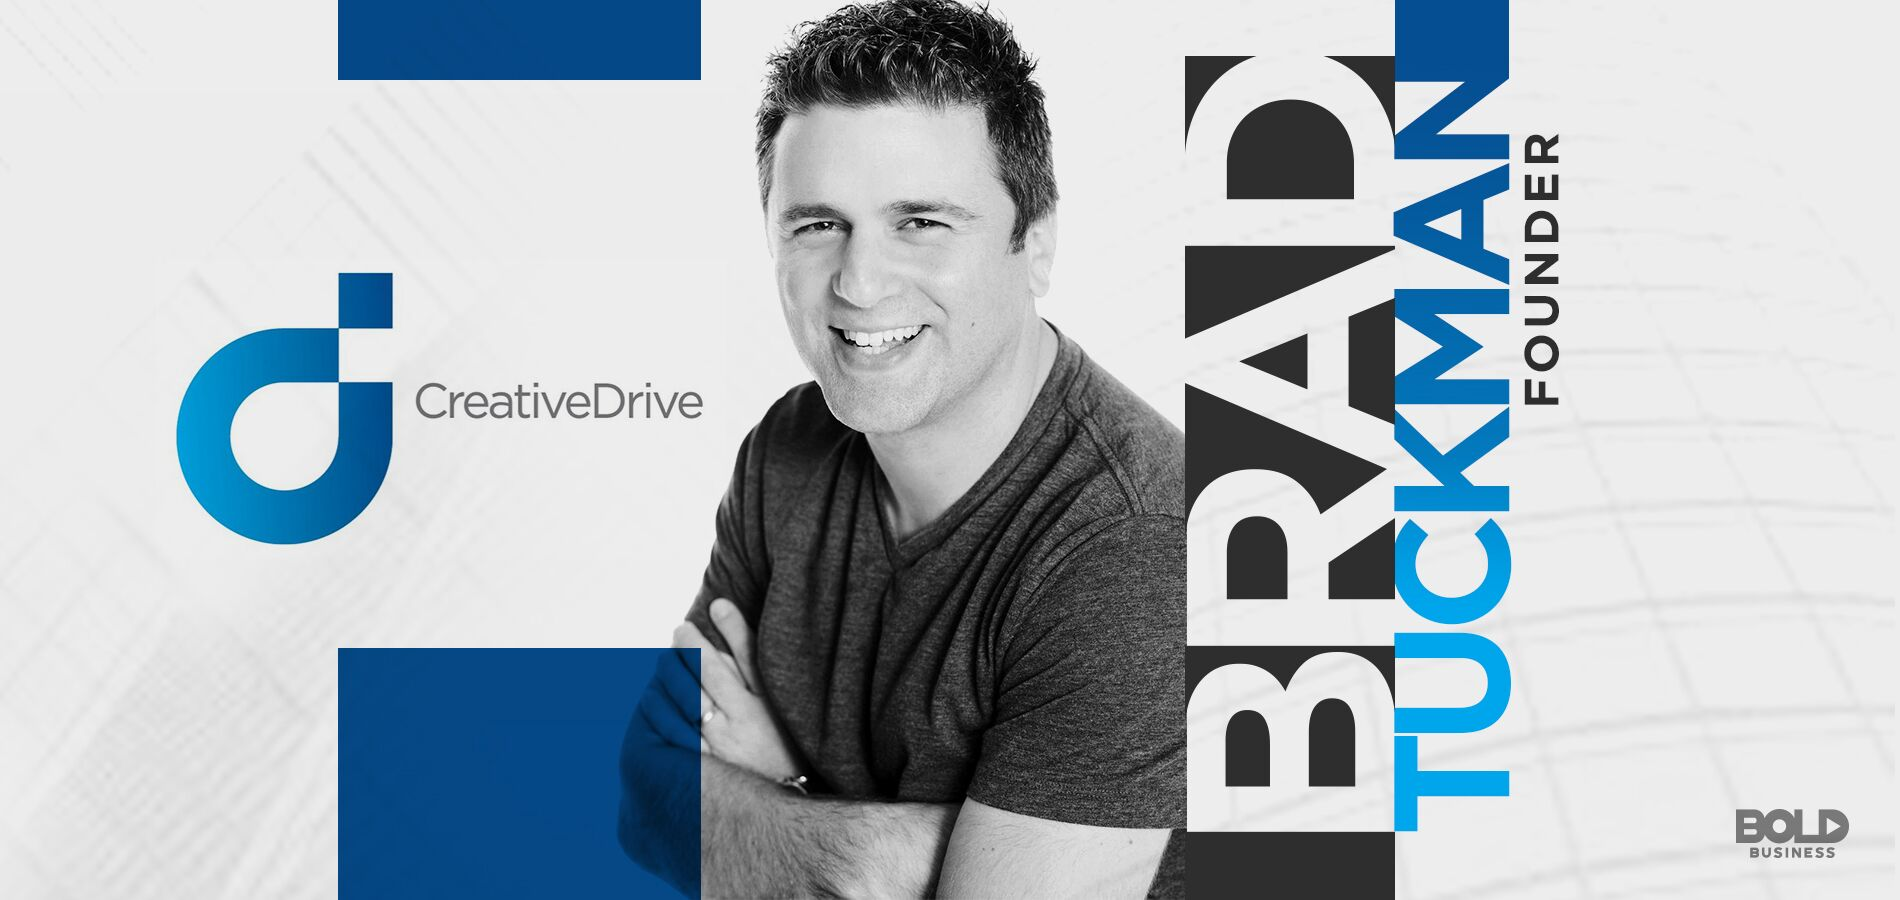 a photo of Brad Tuckman posing with arms crossed beside a logo of the company he founded, Creative Drive